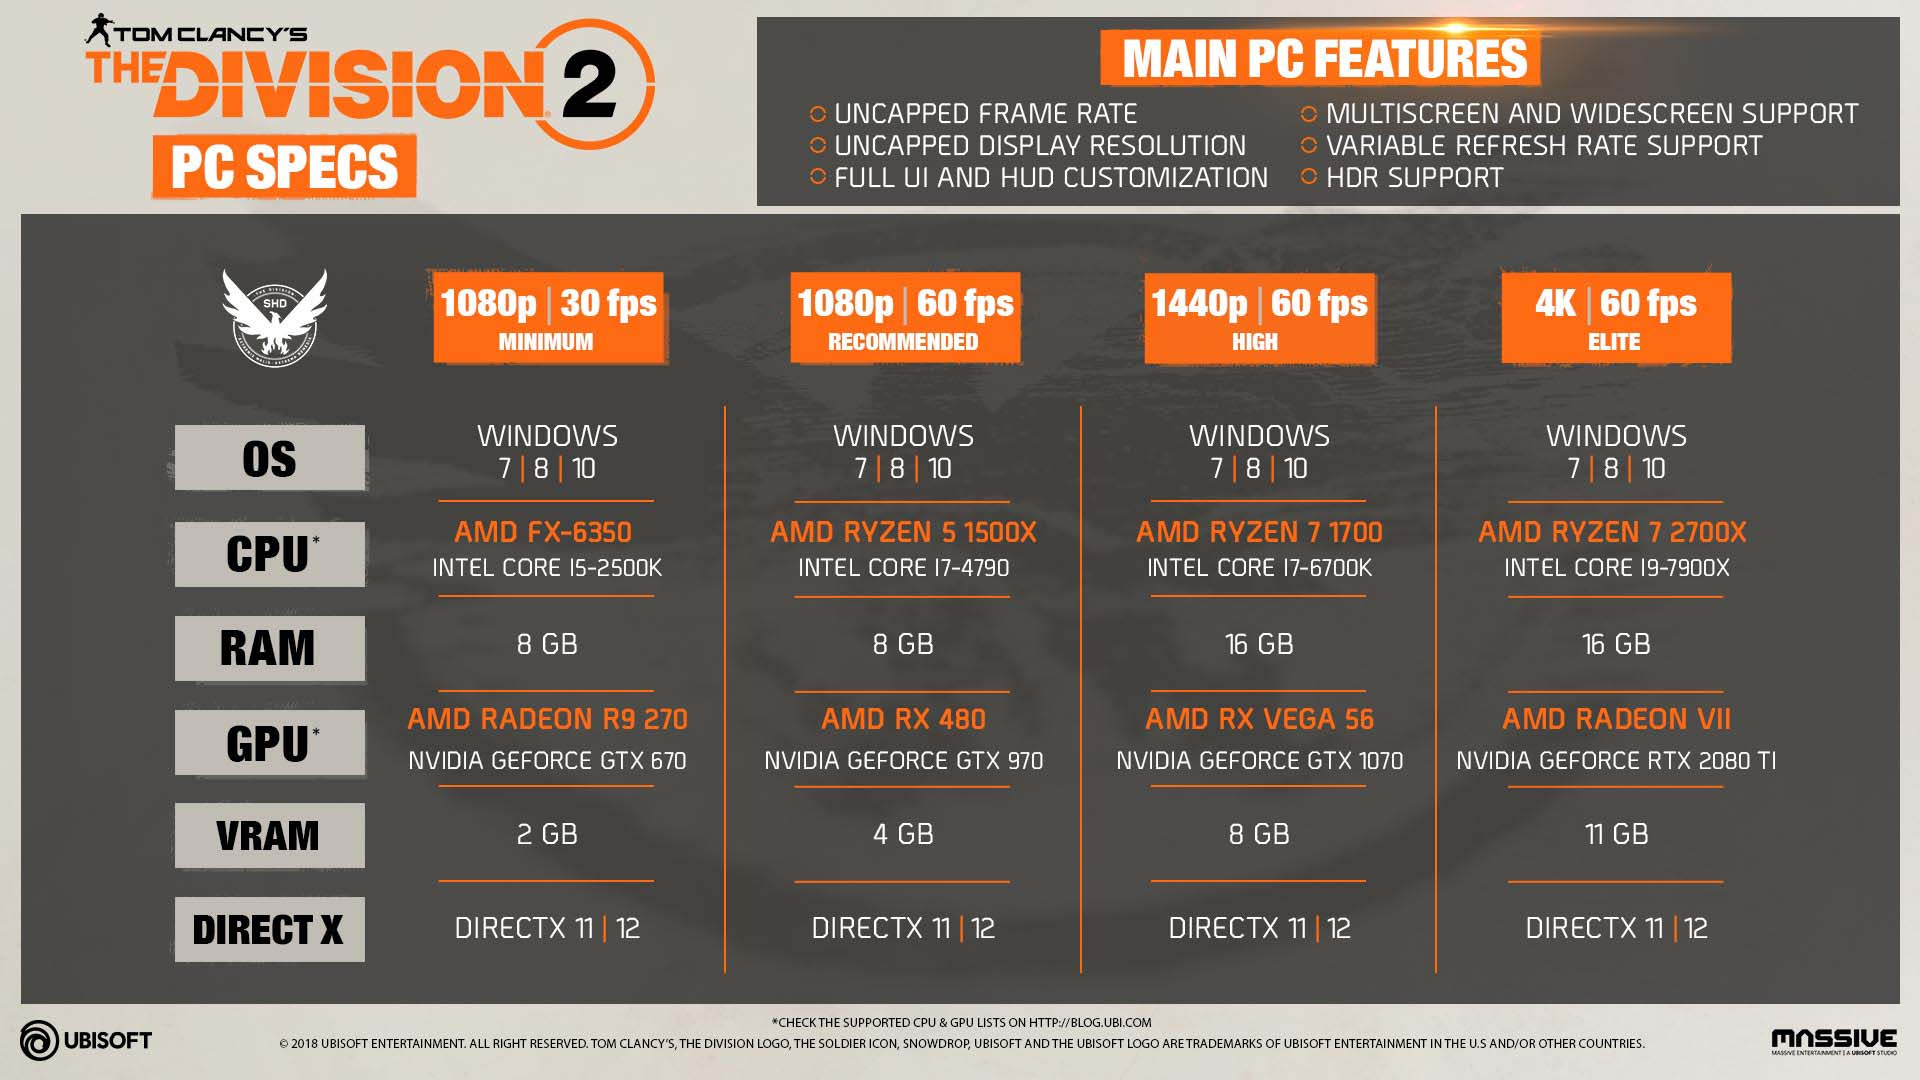 Tom Clancy's The Division 2 Launching March 15, AMD PC